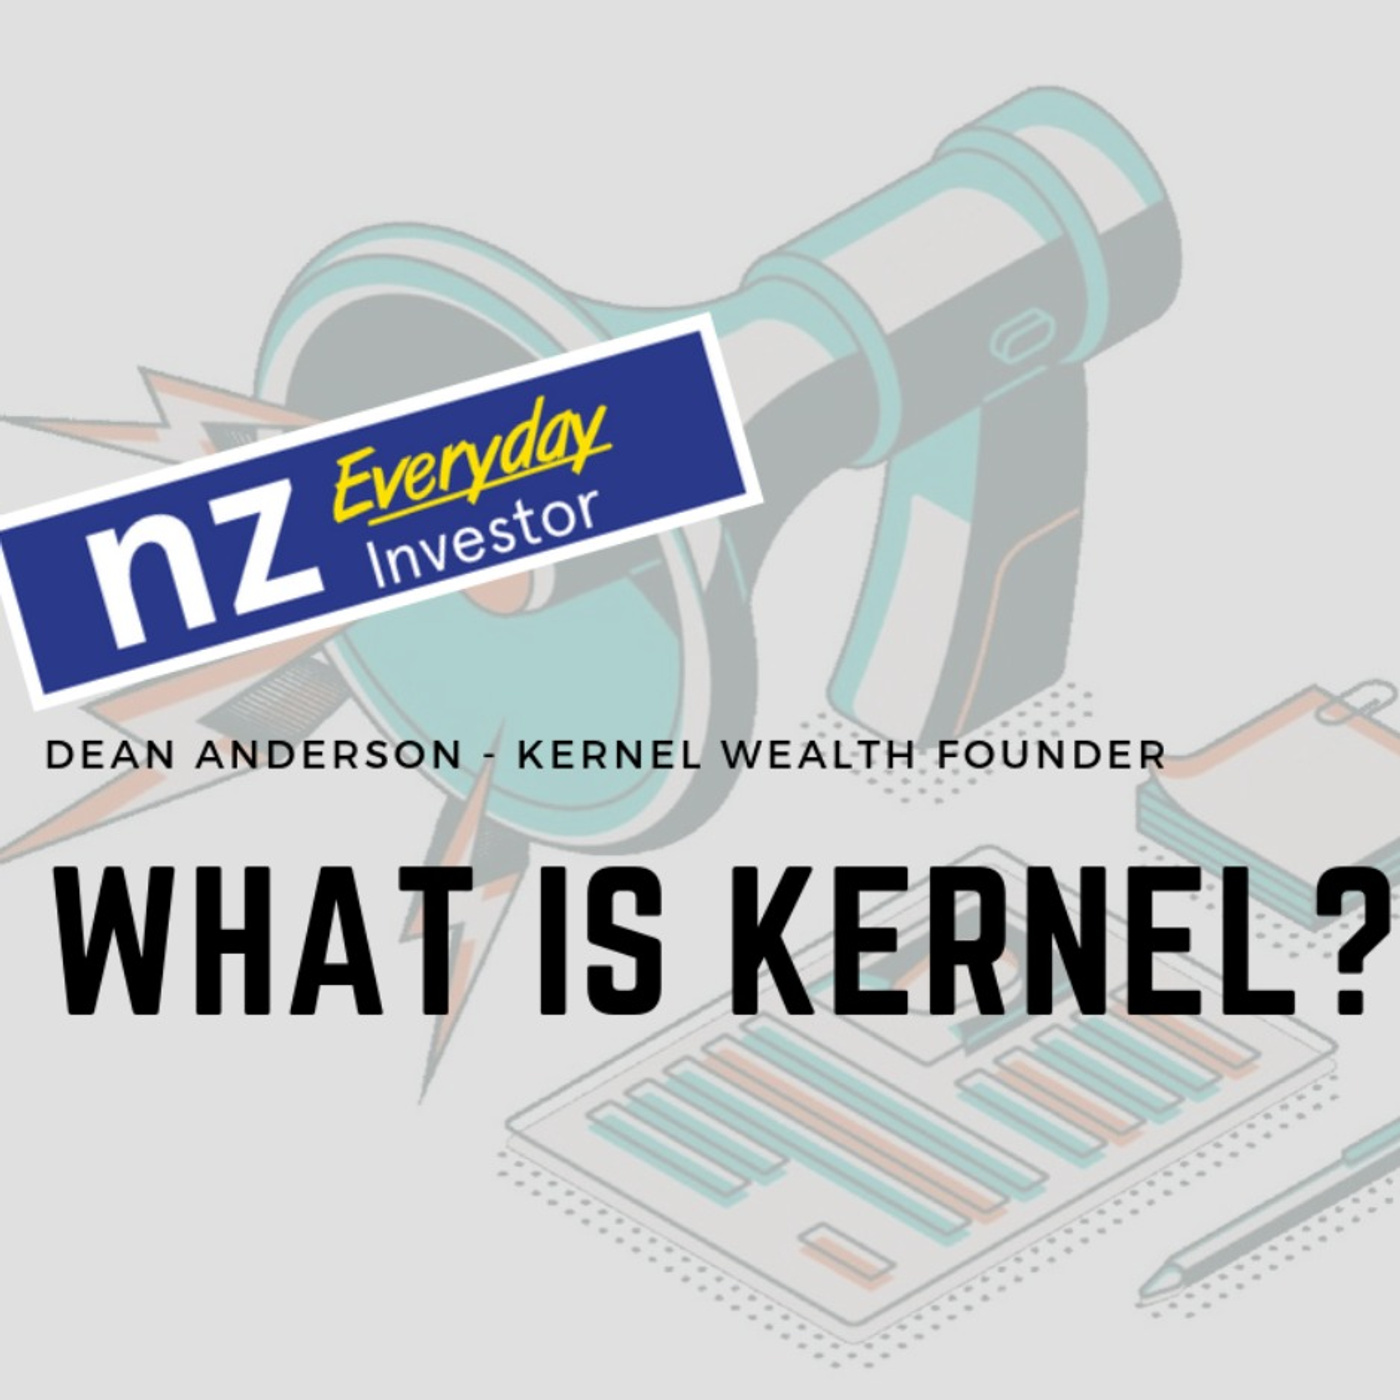 Building wealth starts with a Kernel / Dean Anderson